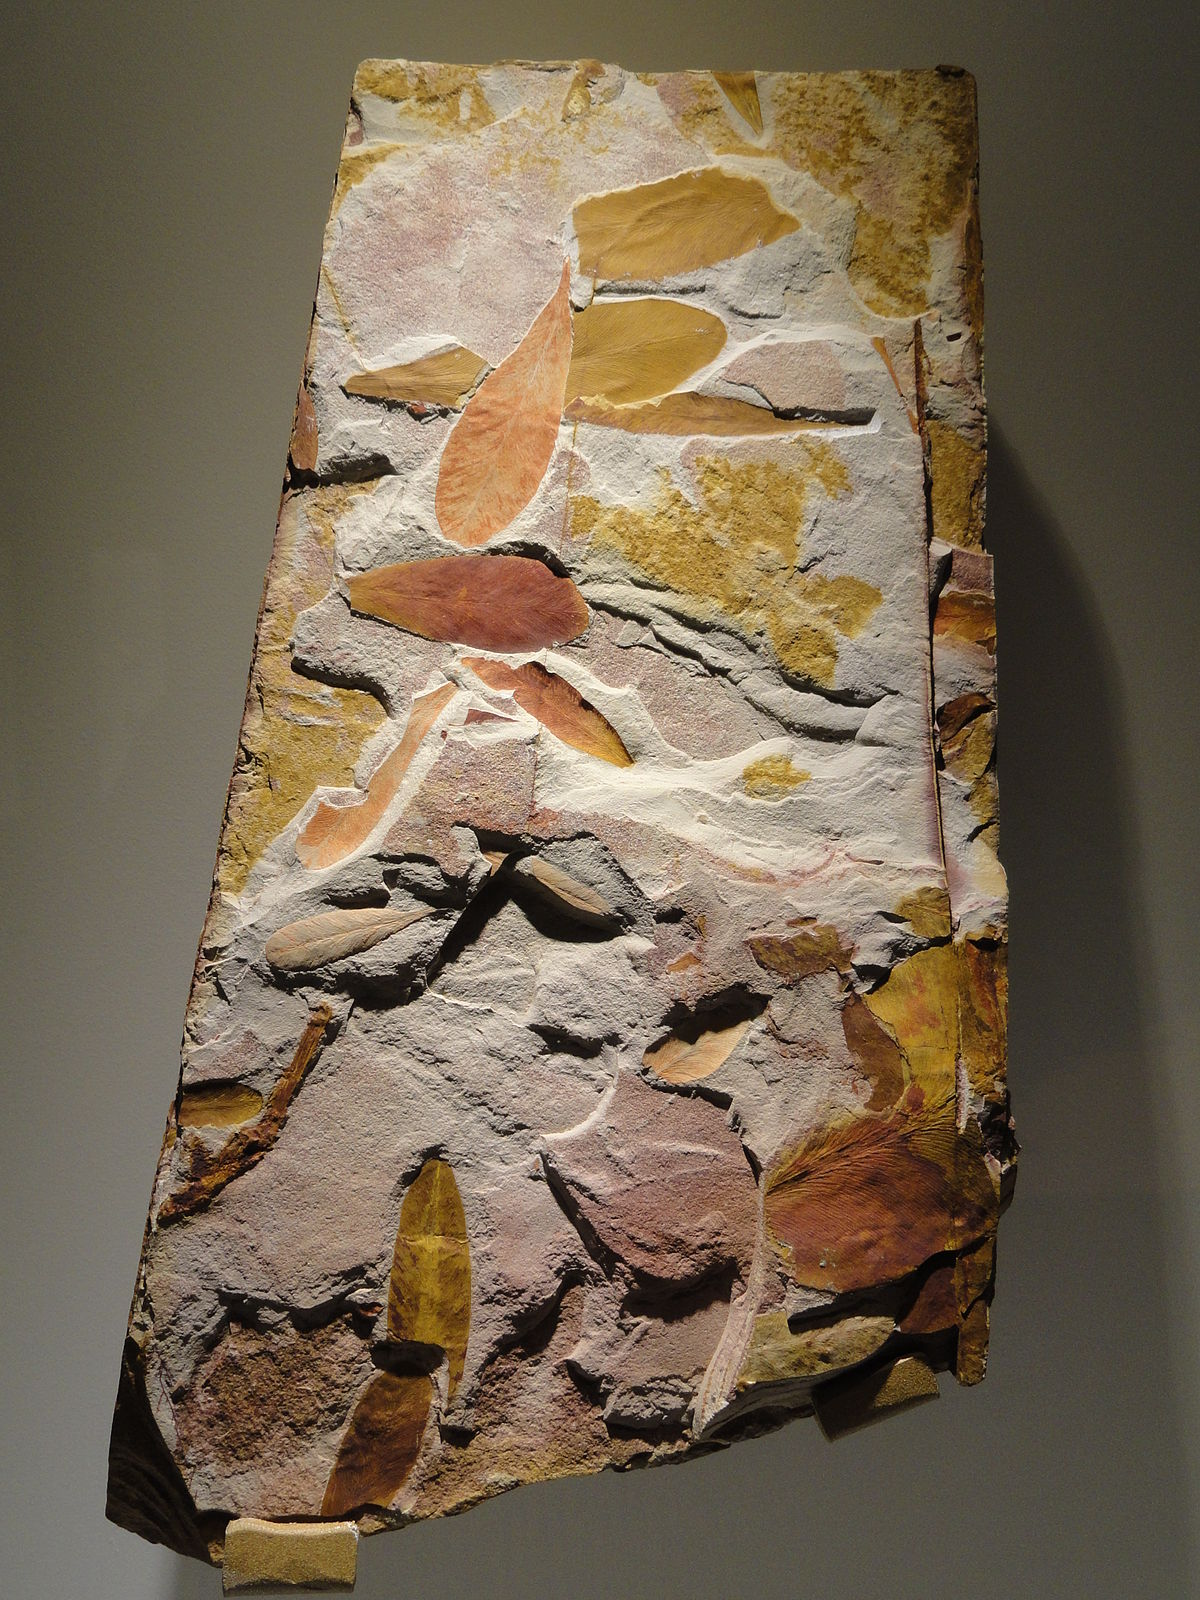 Glossopteris sp., seed ferns, Permian - Triassic - Houston Museum of Natural Science - DSC01765.JPG